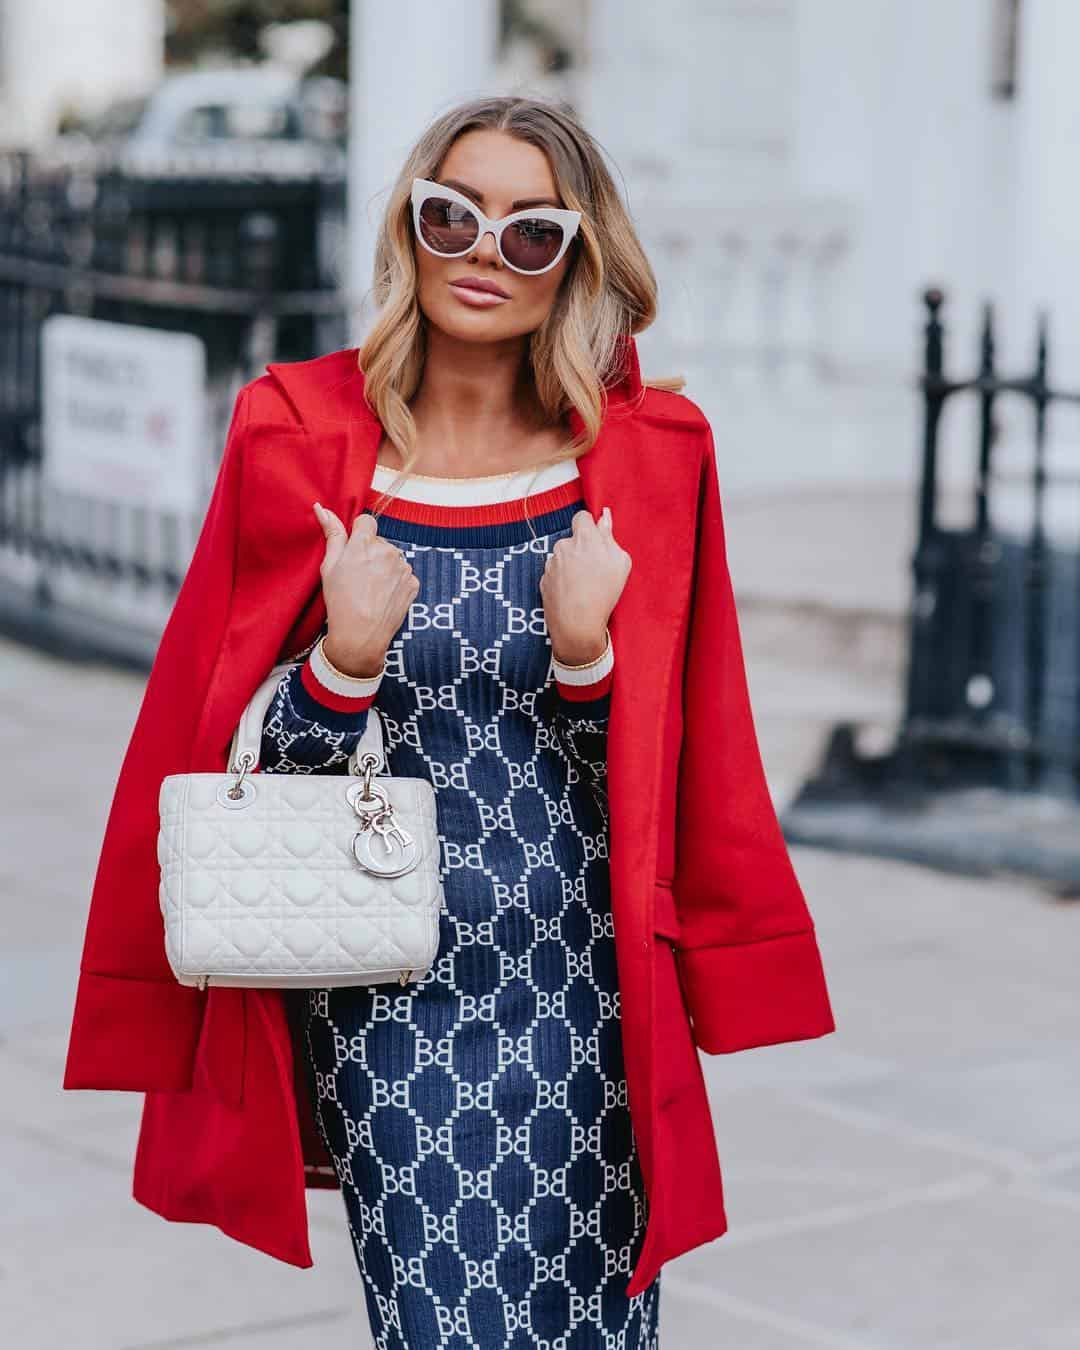 Bianca Petrys Exquisite Street Style to Copy Today